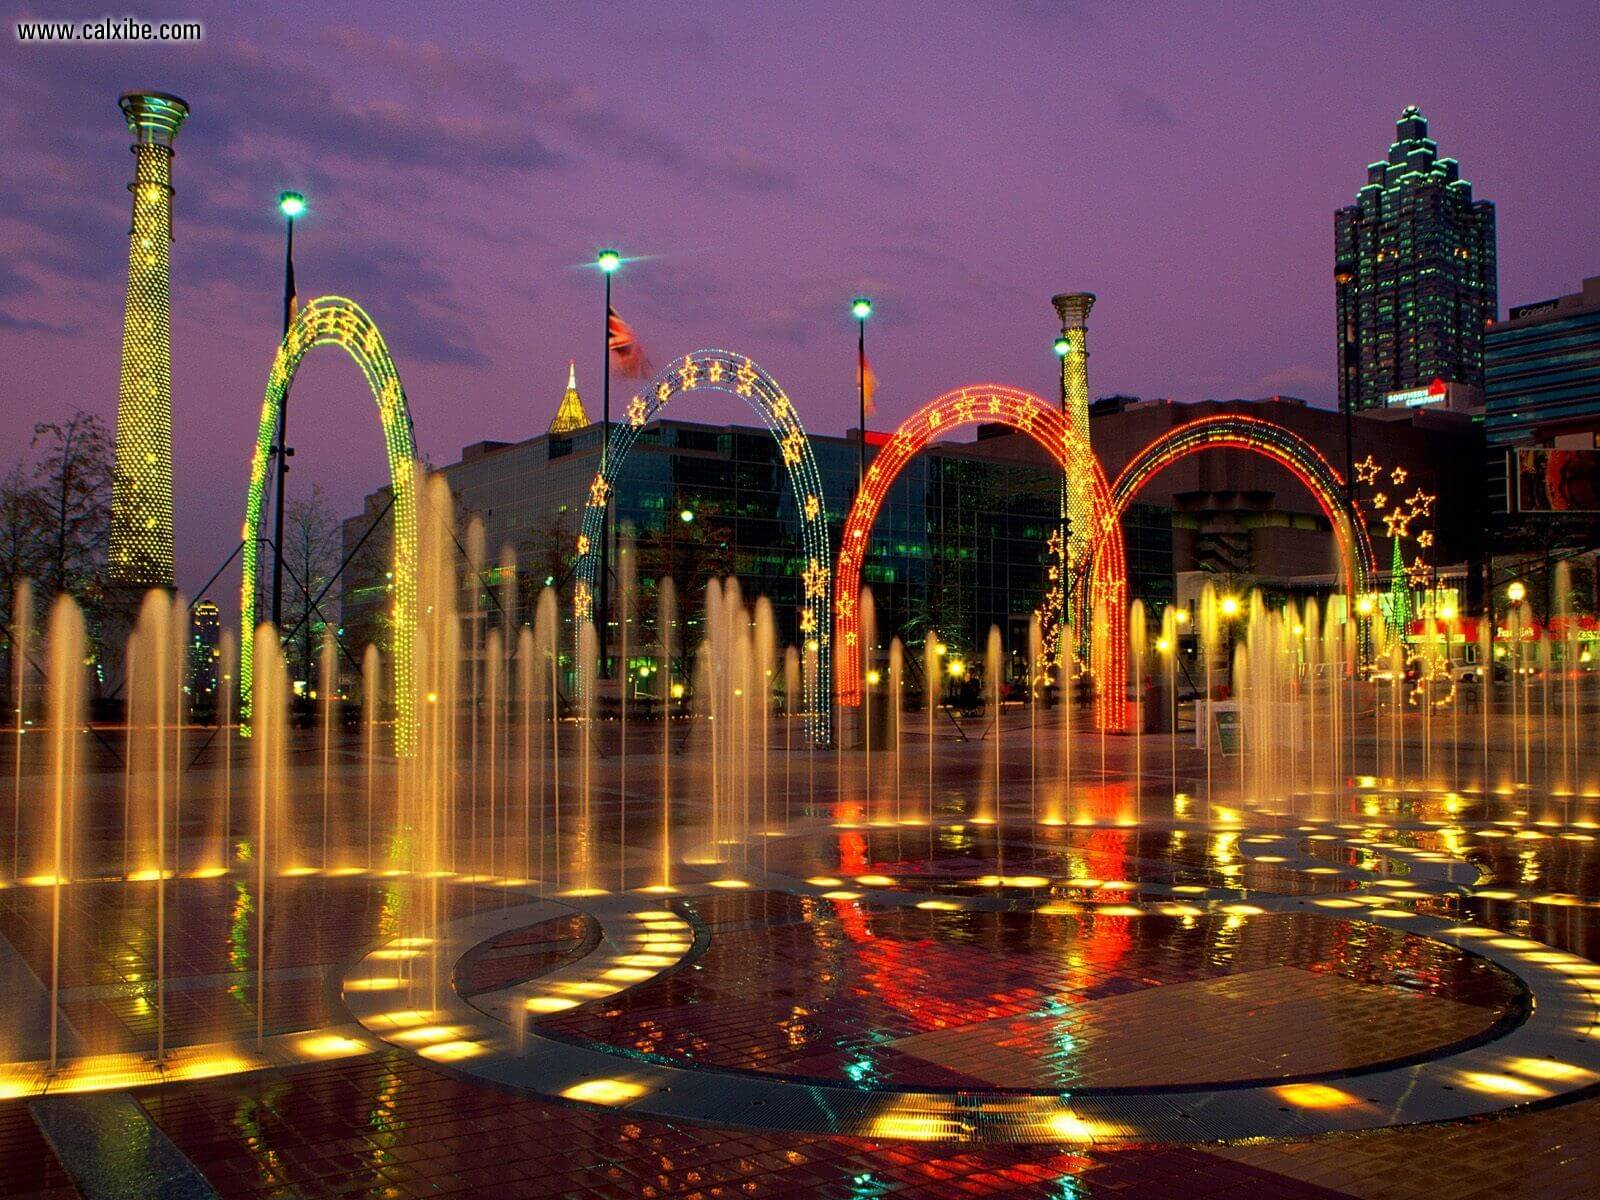 Centennial-Olympic-Park-Things-to-do-in-Atlanta